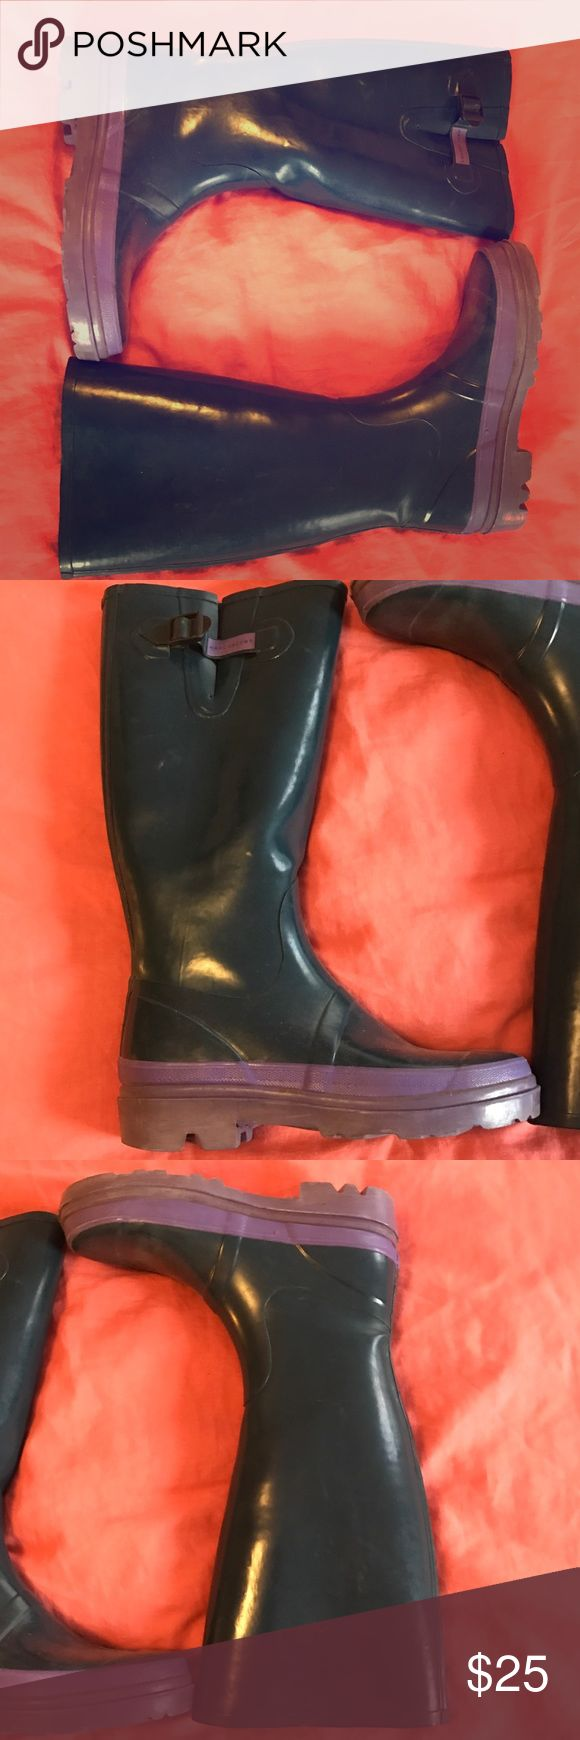 Marc Jacobs Rain Boots Marc Jacobs Rain Boots, turquoise and purple, worn but in good condition. Great quality heavy rubber Marc Jacobs Shoes Winter & Rain Boots